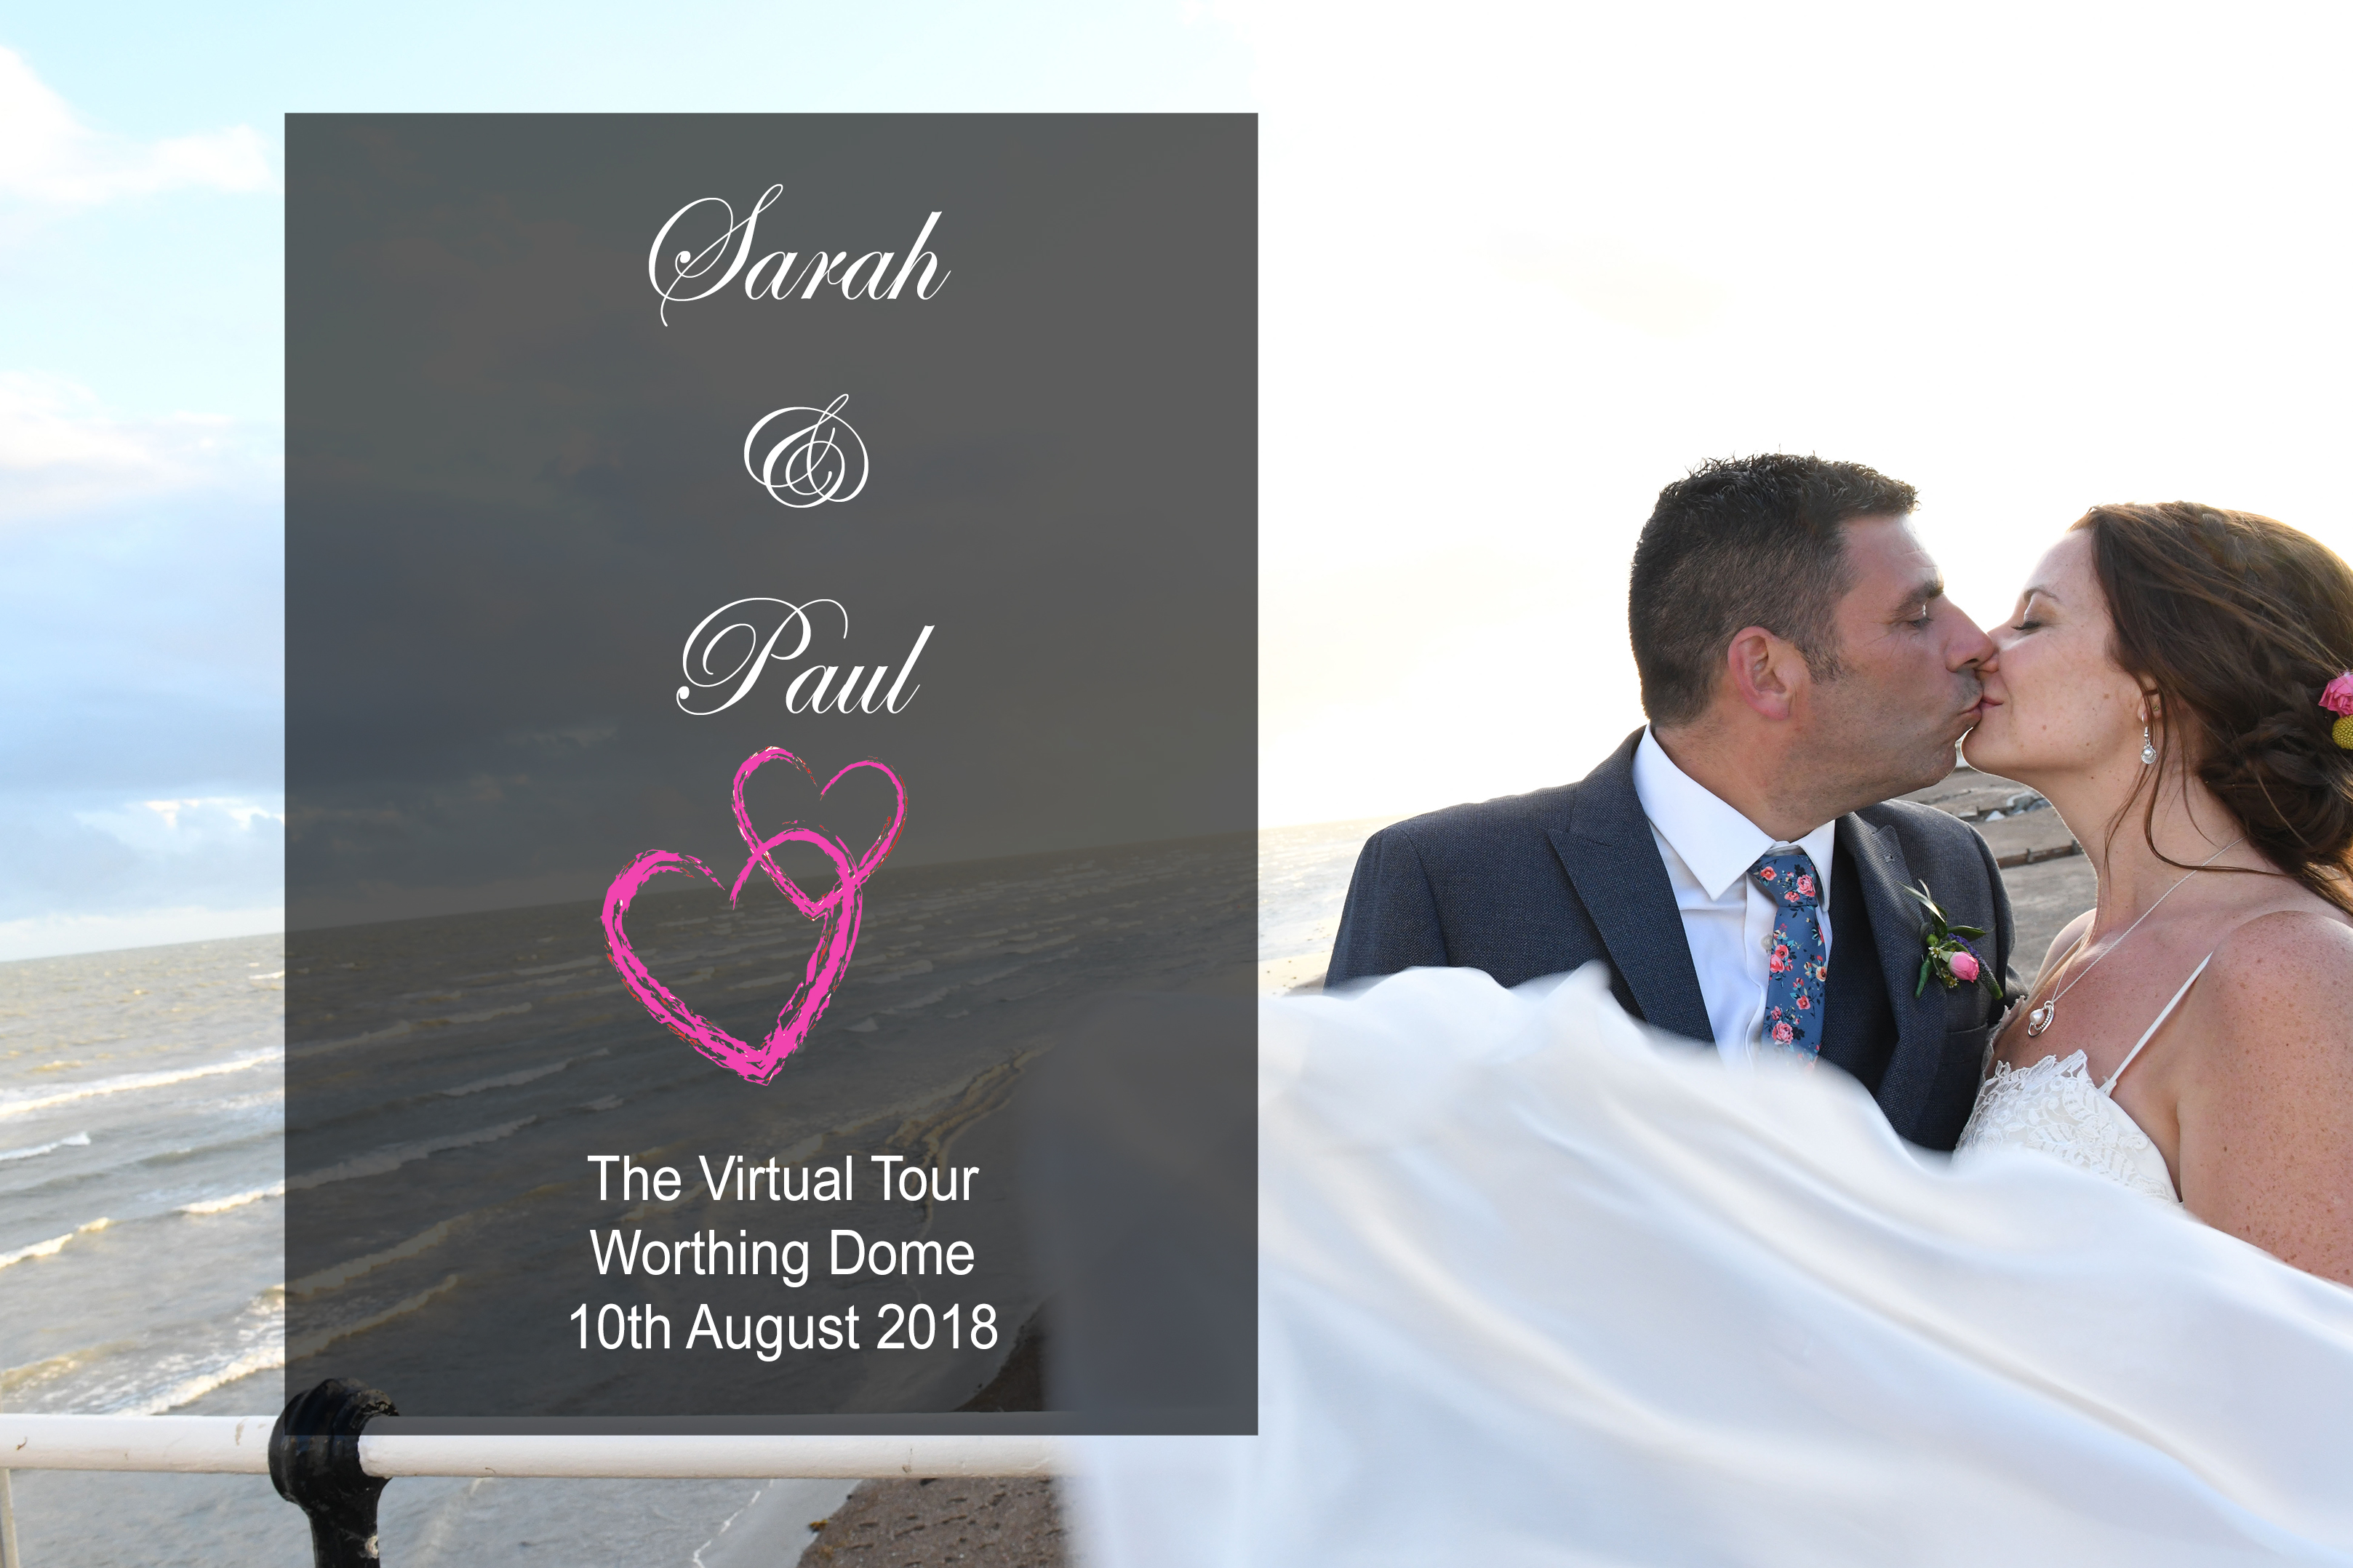 Vr 360 Wedding Ceremony: Virtual Reality 360 Filming Services